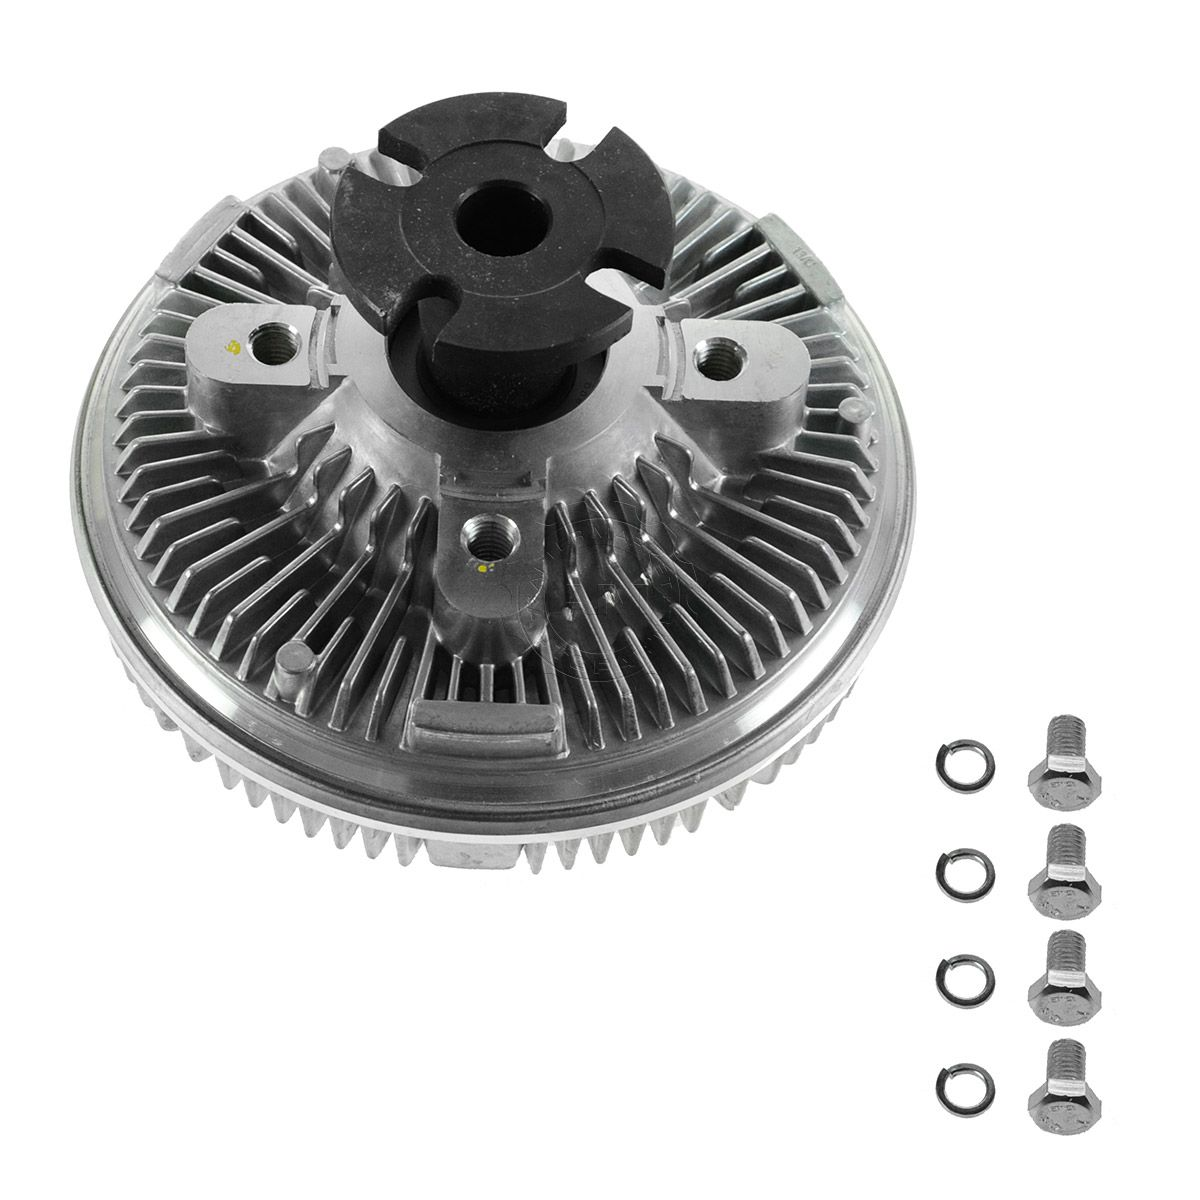 hight resolution of heavy duty radiator cooling fan clutch for chevy gmc pickup truck astro blazer